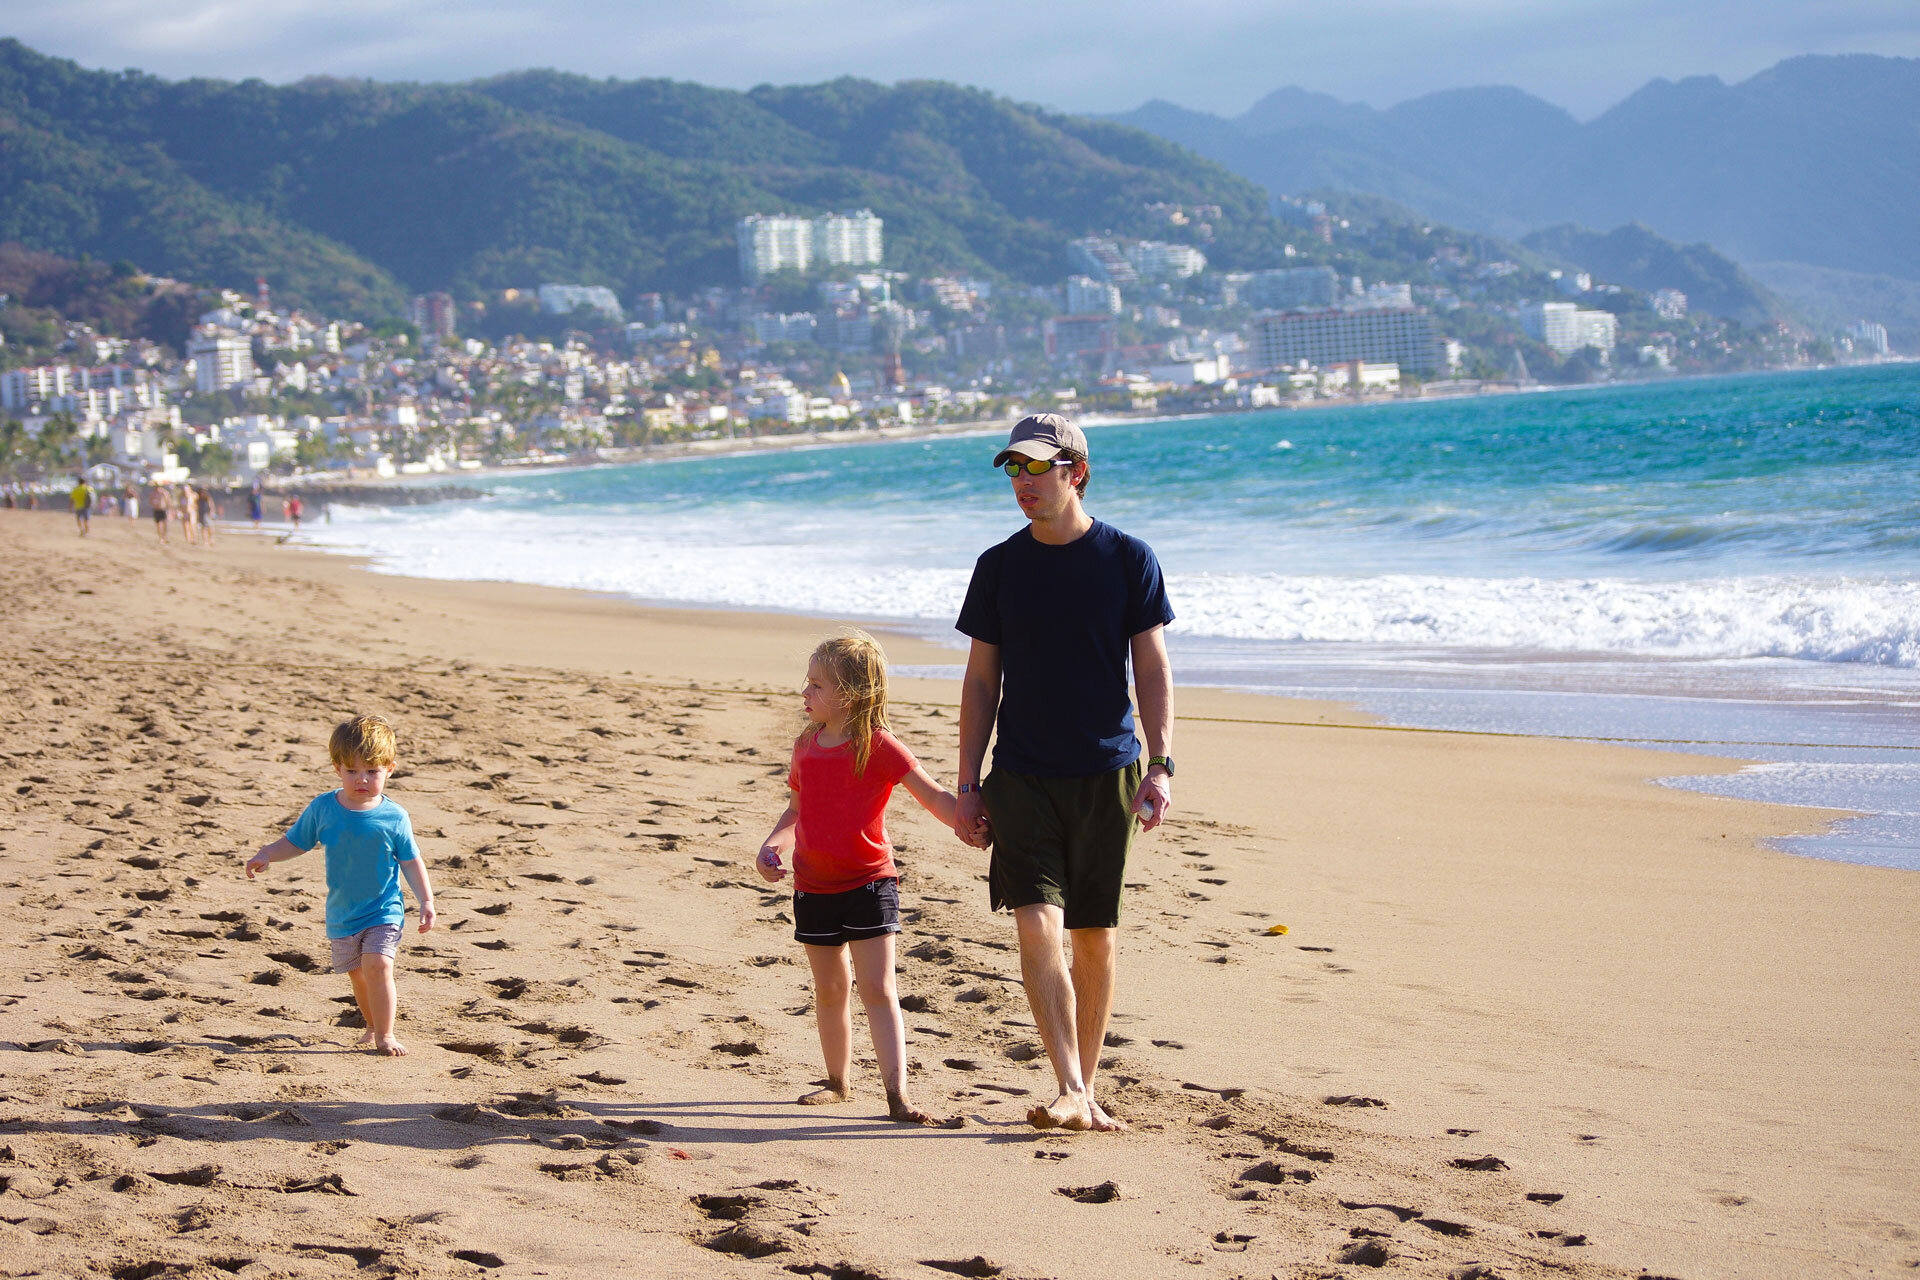 Traveling to Puerto Vallarta with small children